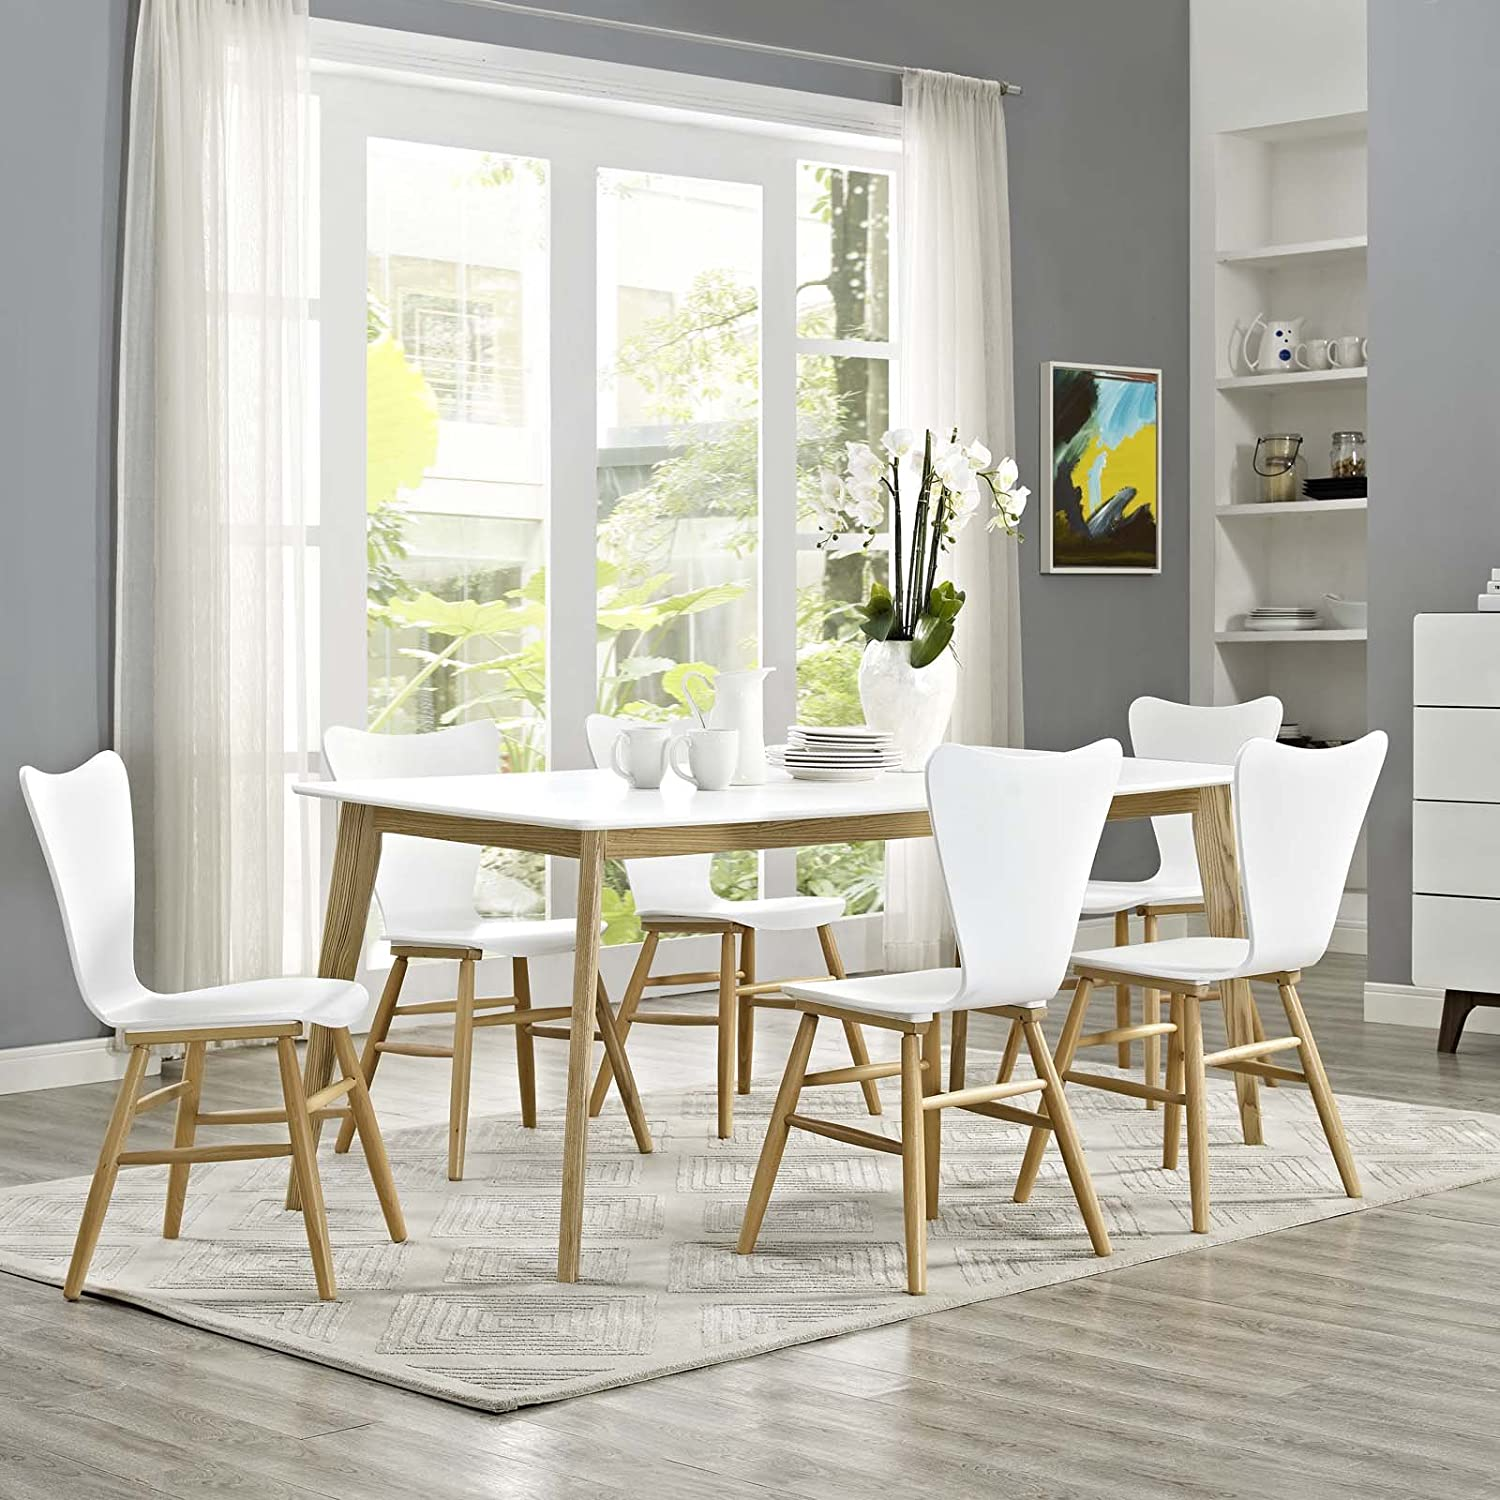 """Modway Stratum 71"""" Mid-Century Modern Kitchen and Dining Room Table in White"""